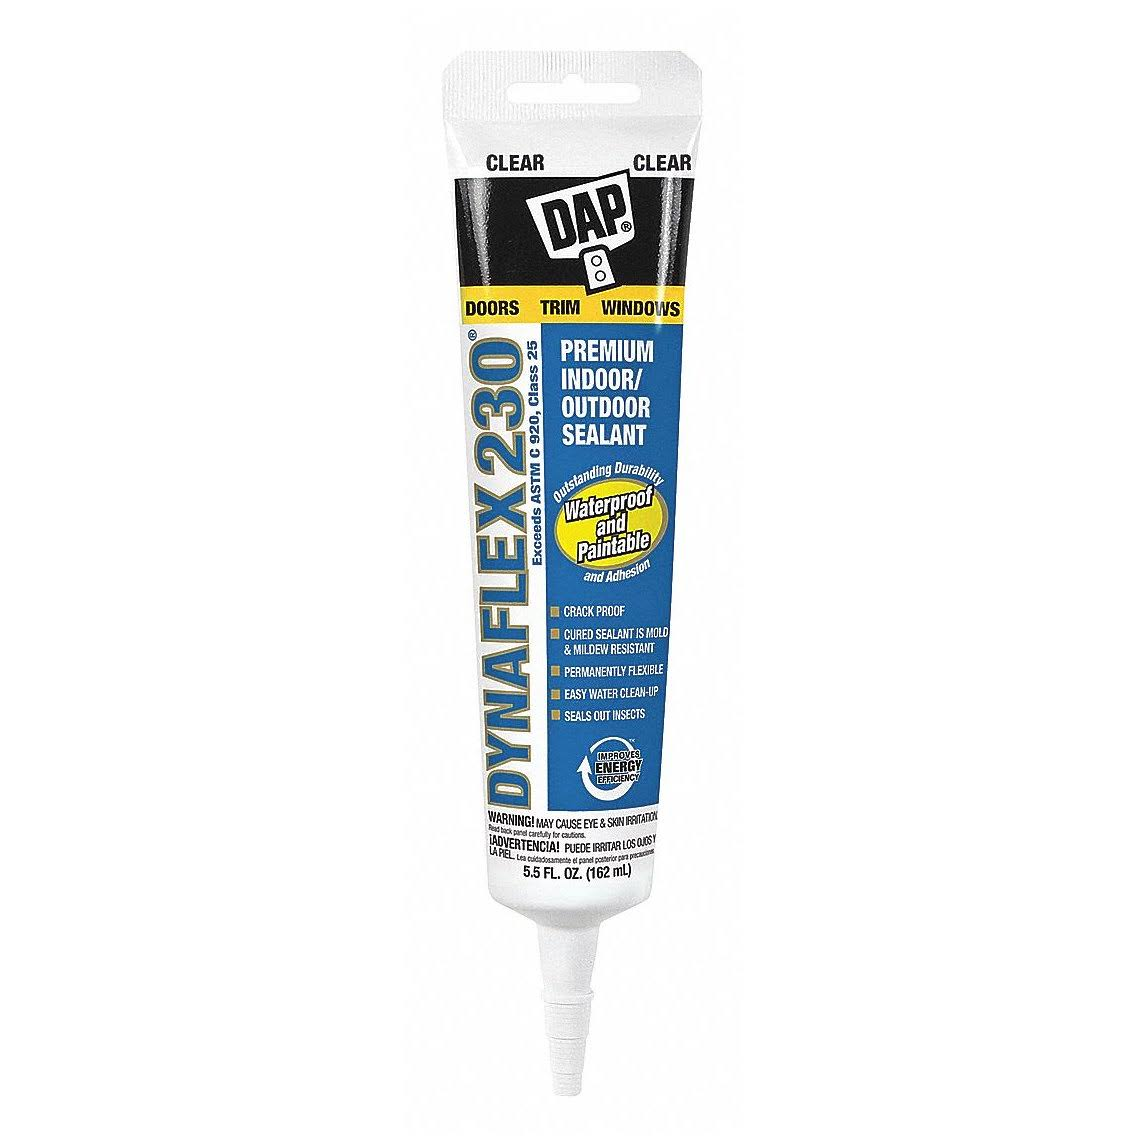 Dap Dynaflex 230 Premium Indoor Outdoor Sealant - 5.5oz